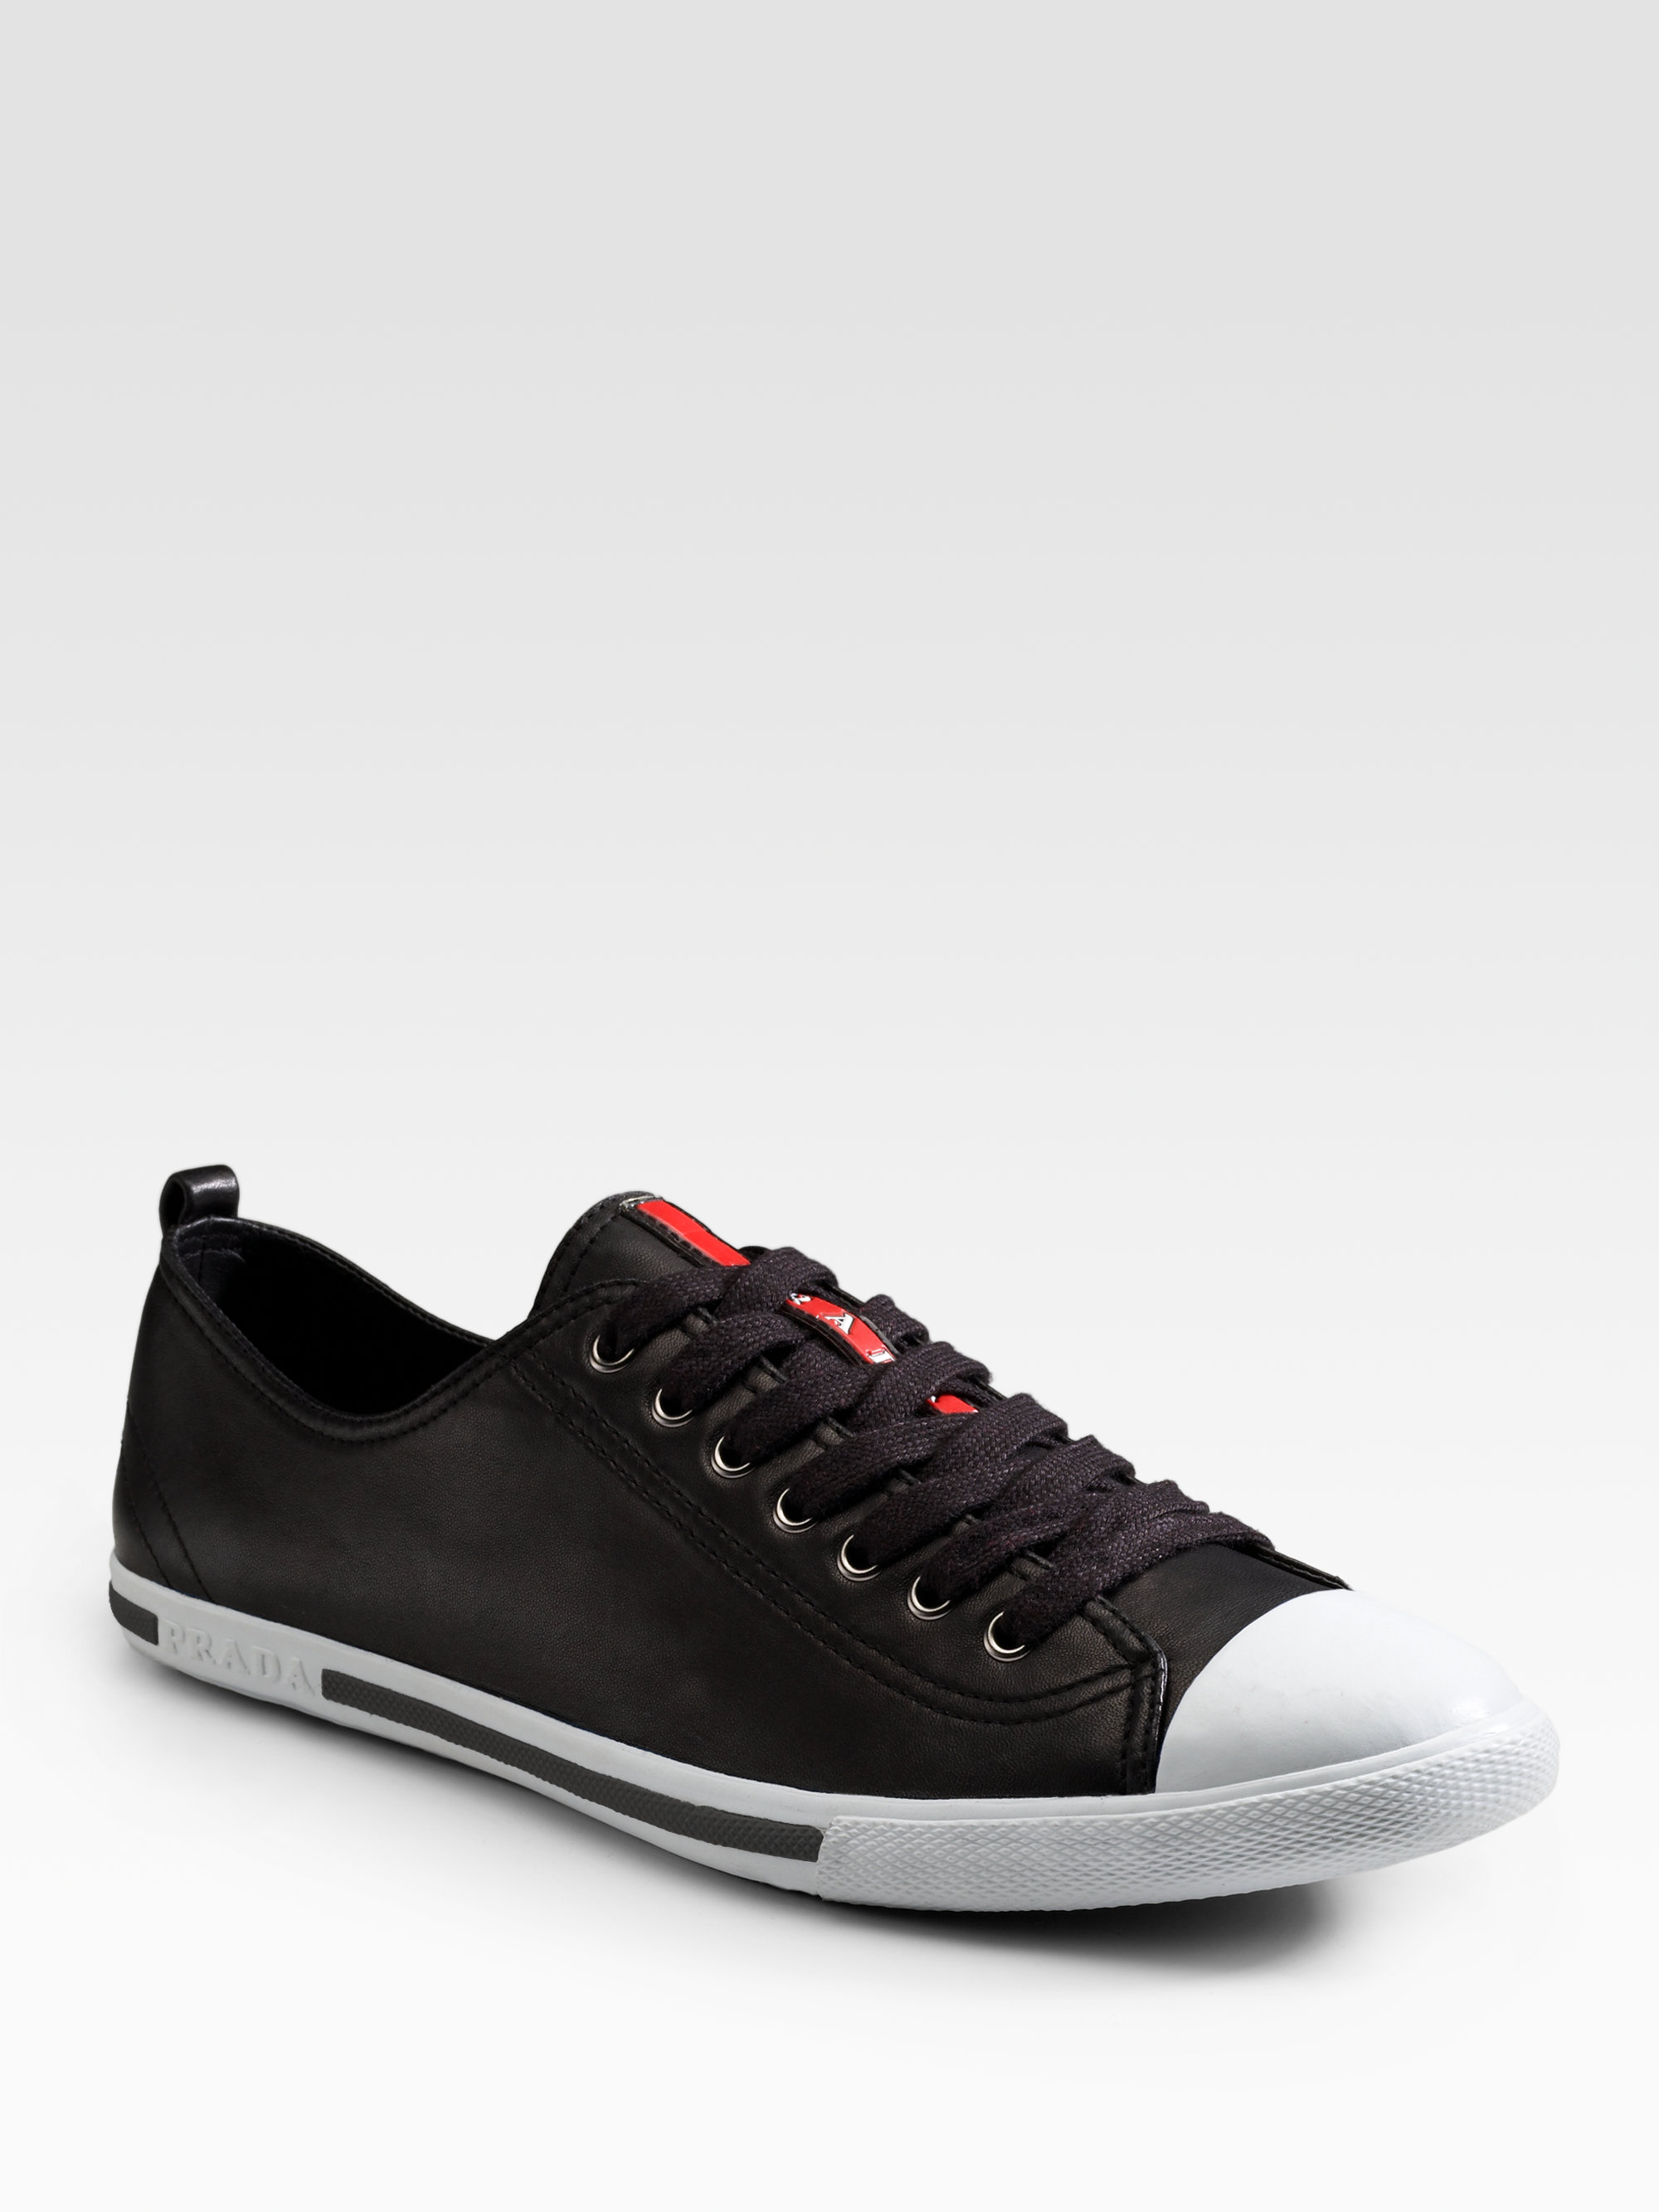 f07acf36fa Prada Nappa Leather Sneakers in Black for Men - Lyst